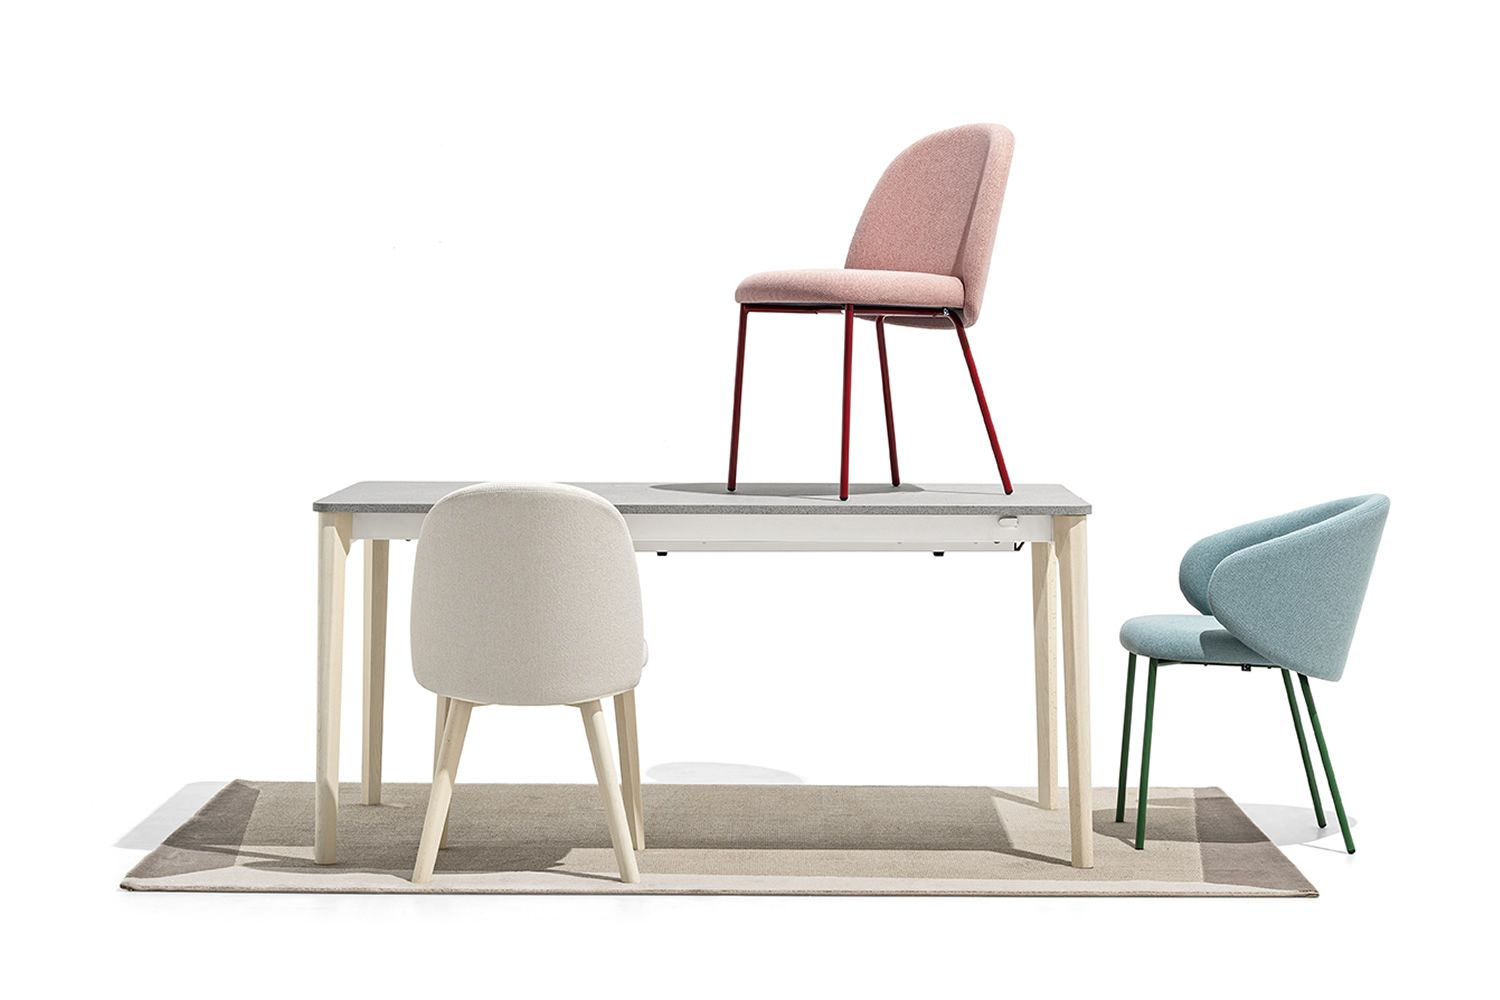 Tapì rug by Connubia matching with Tuka chairs